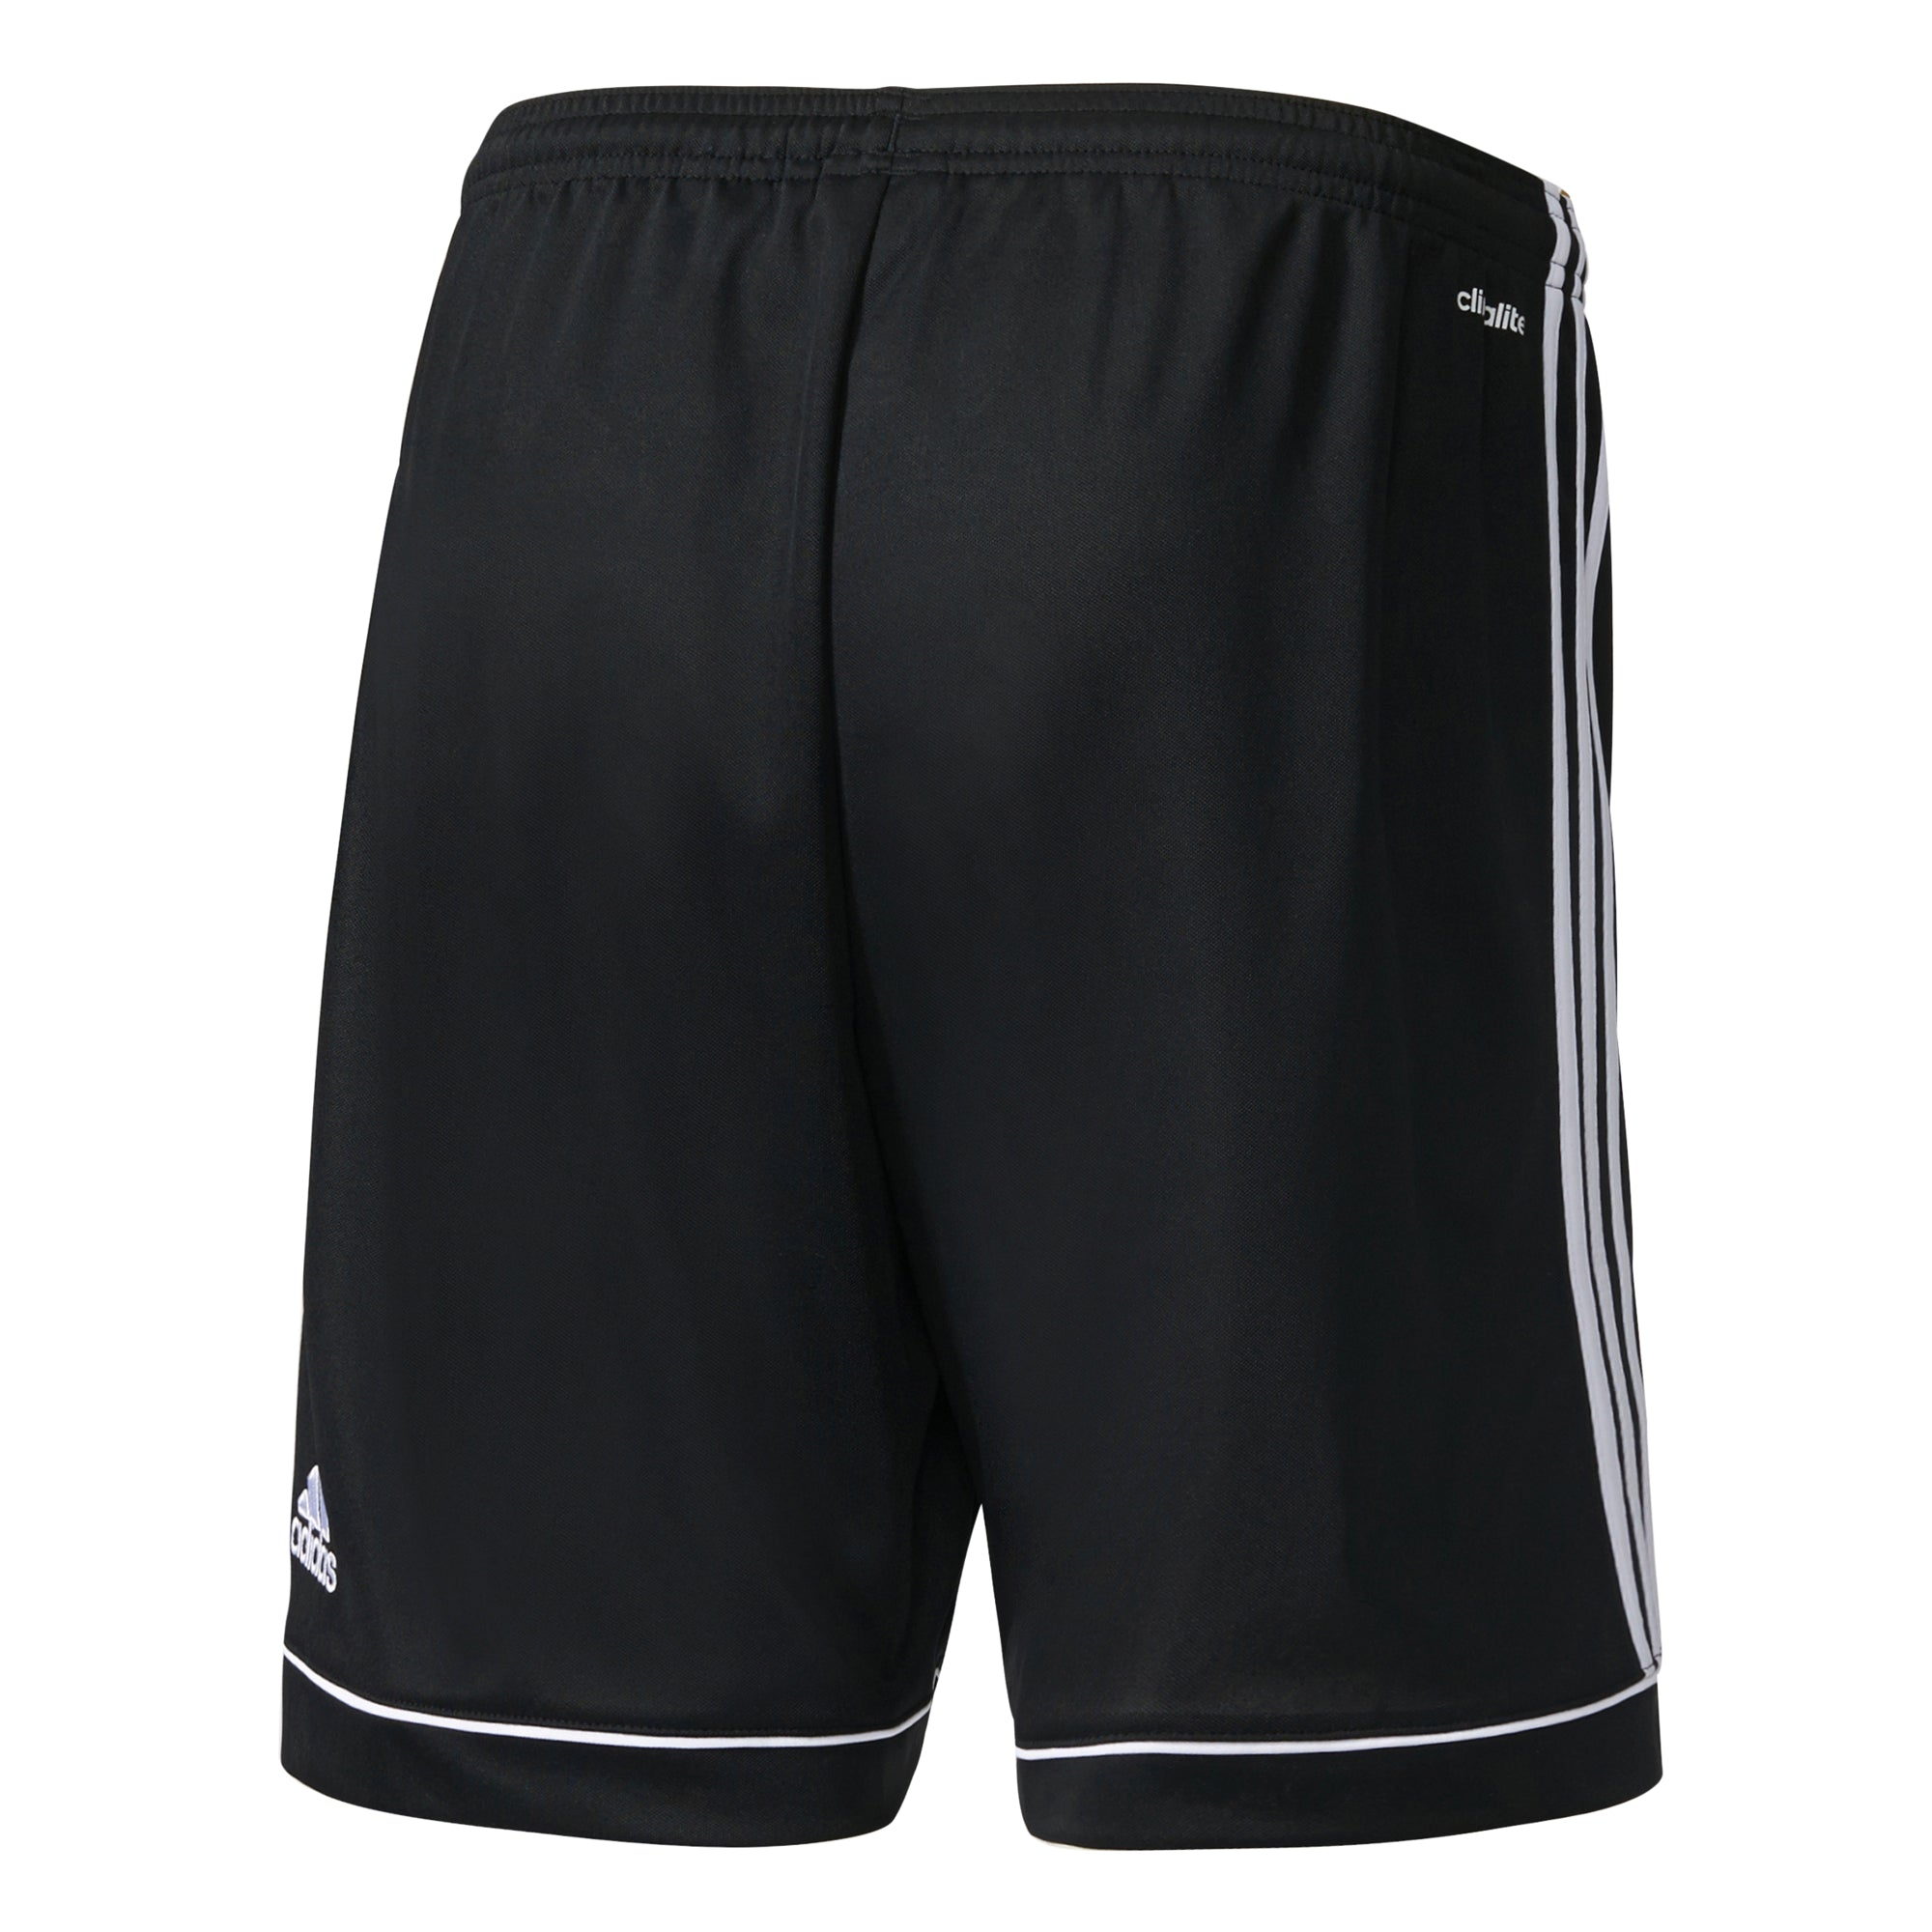 Adidas Squad 17 Shorts - Adults